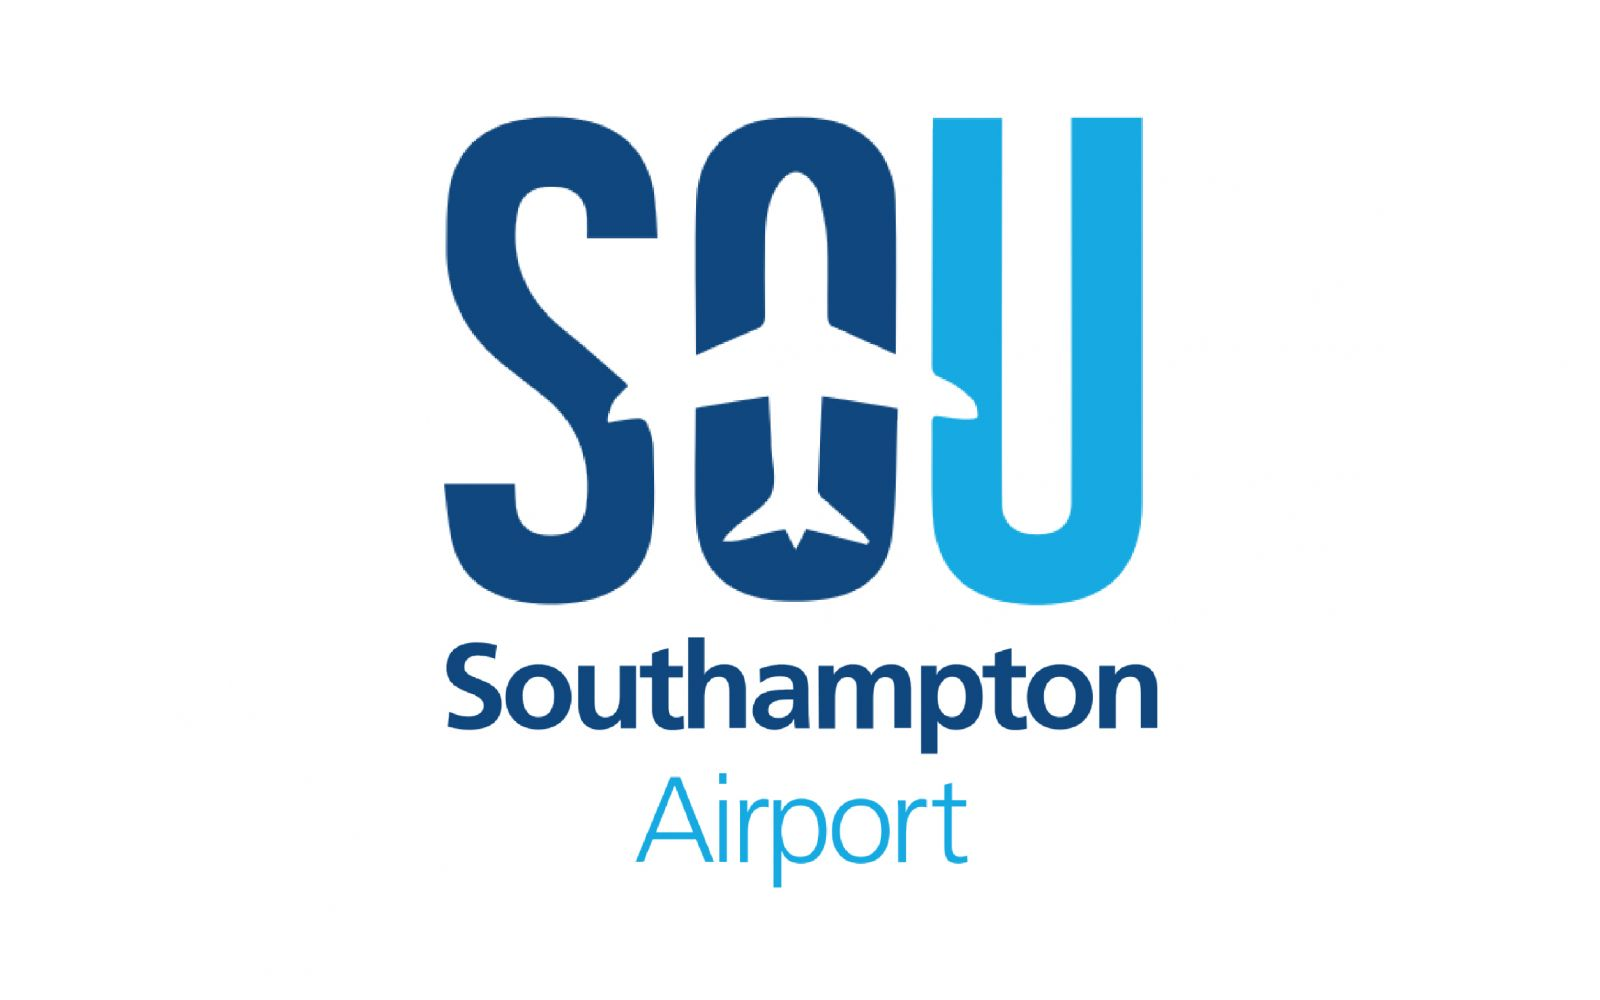 ICTS' Aviation portfolio expands with Southampton Airport